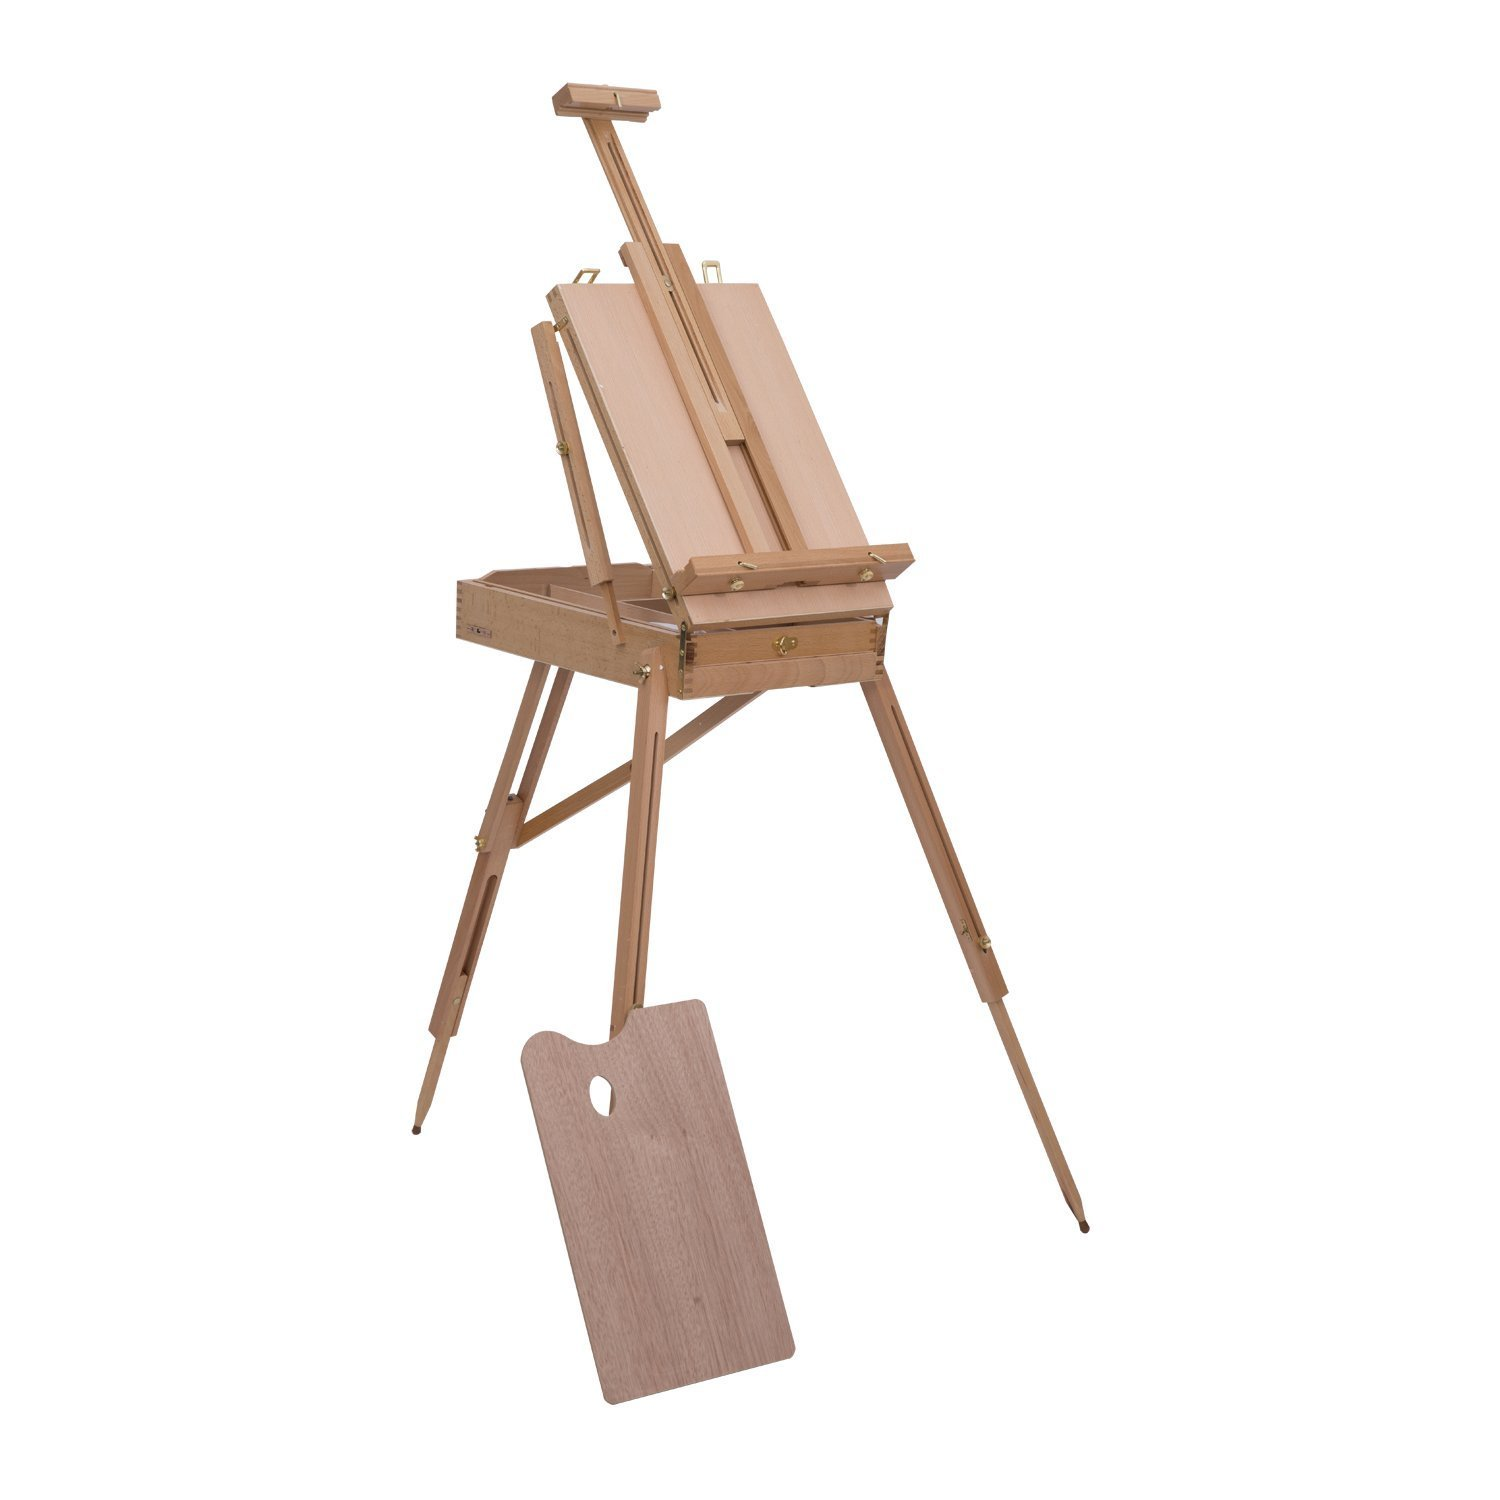 HOMCOM Folding Wood French Artists Standing Easel Set Portable Art Painters Tripod Sketch Craft Wood Aosom Canada